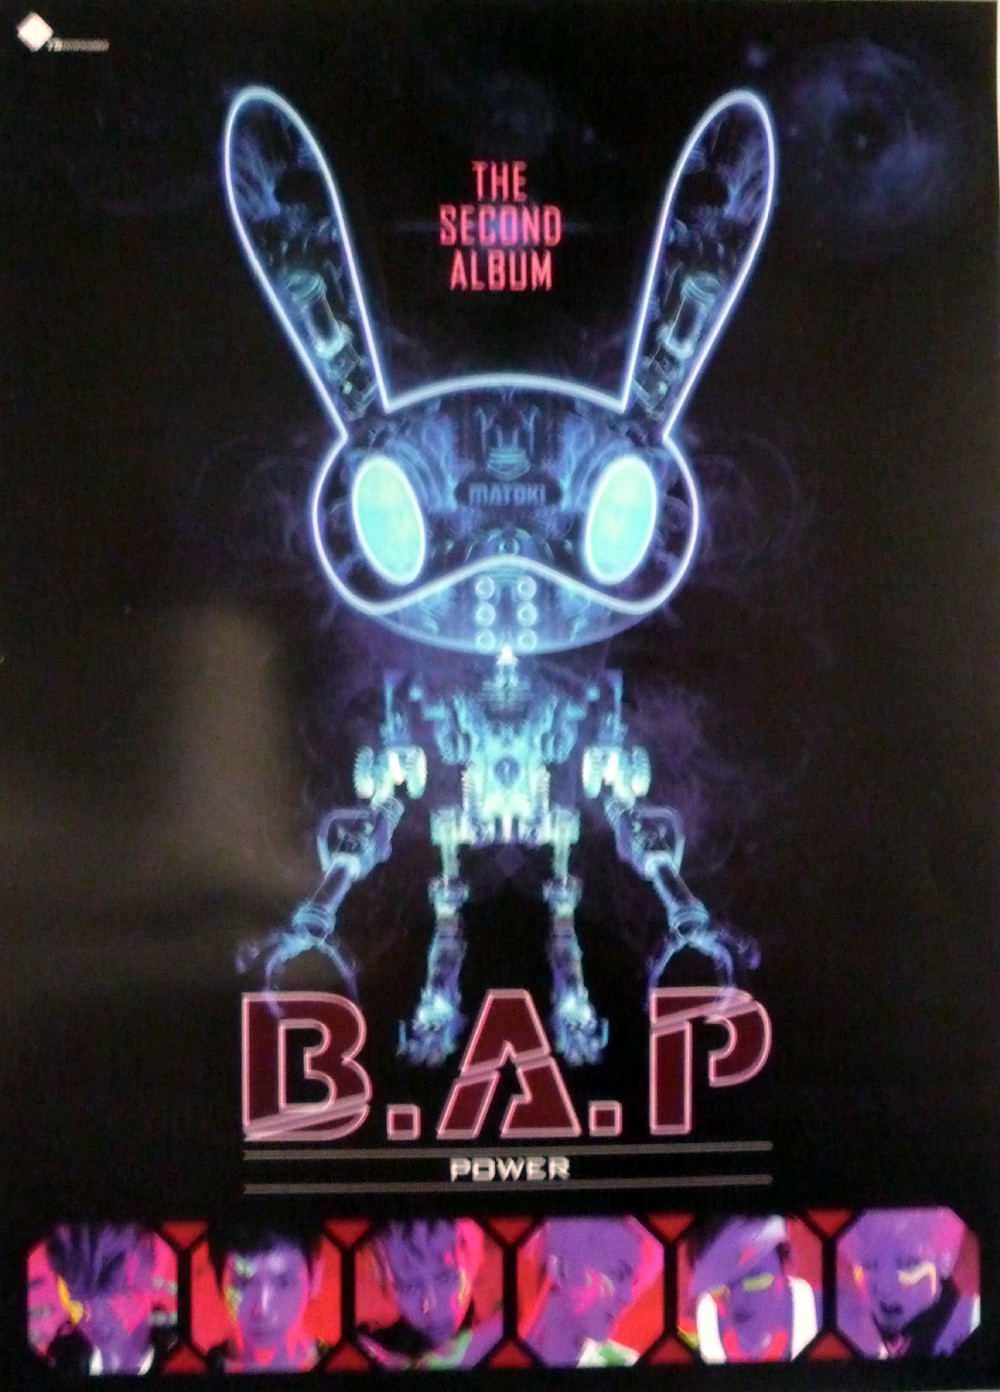 bap no mercy album cover - photo #27